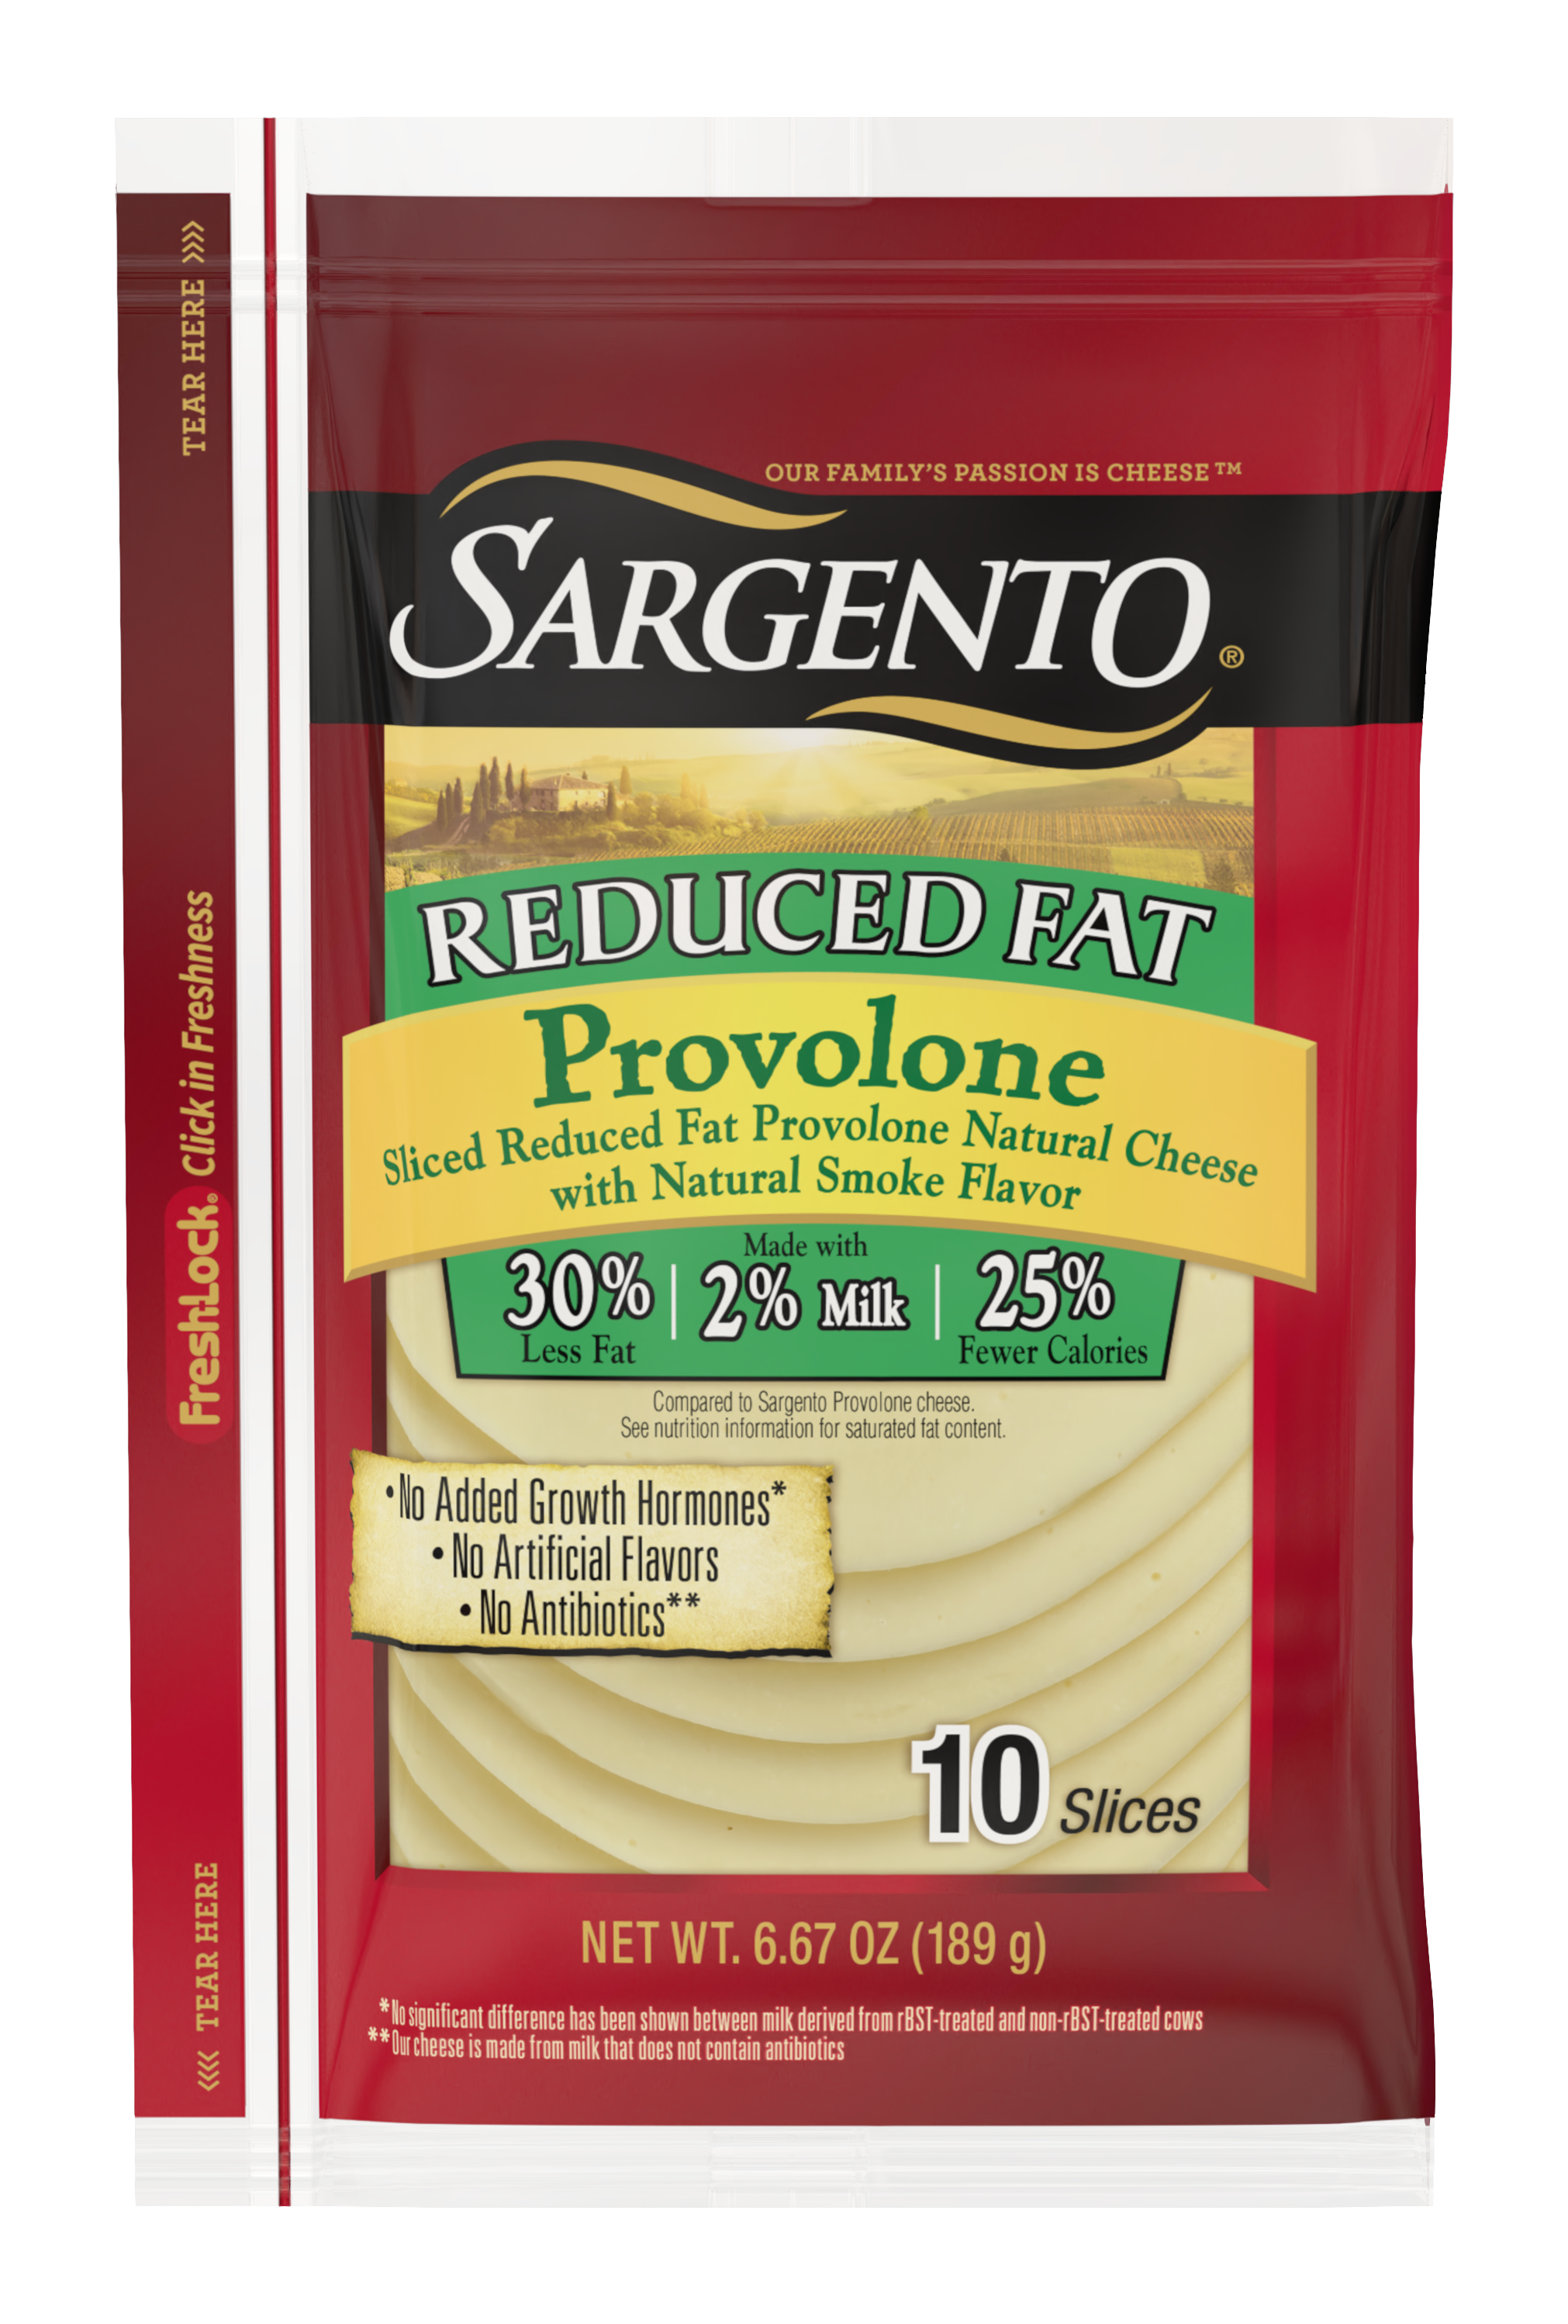 Sargento® Sliced Reduced FatProvolone Natural Cheese with Natural Smoke Flavor